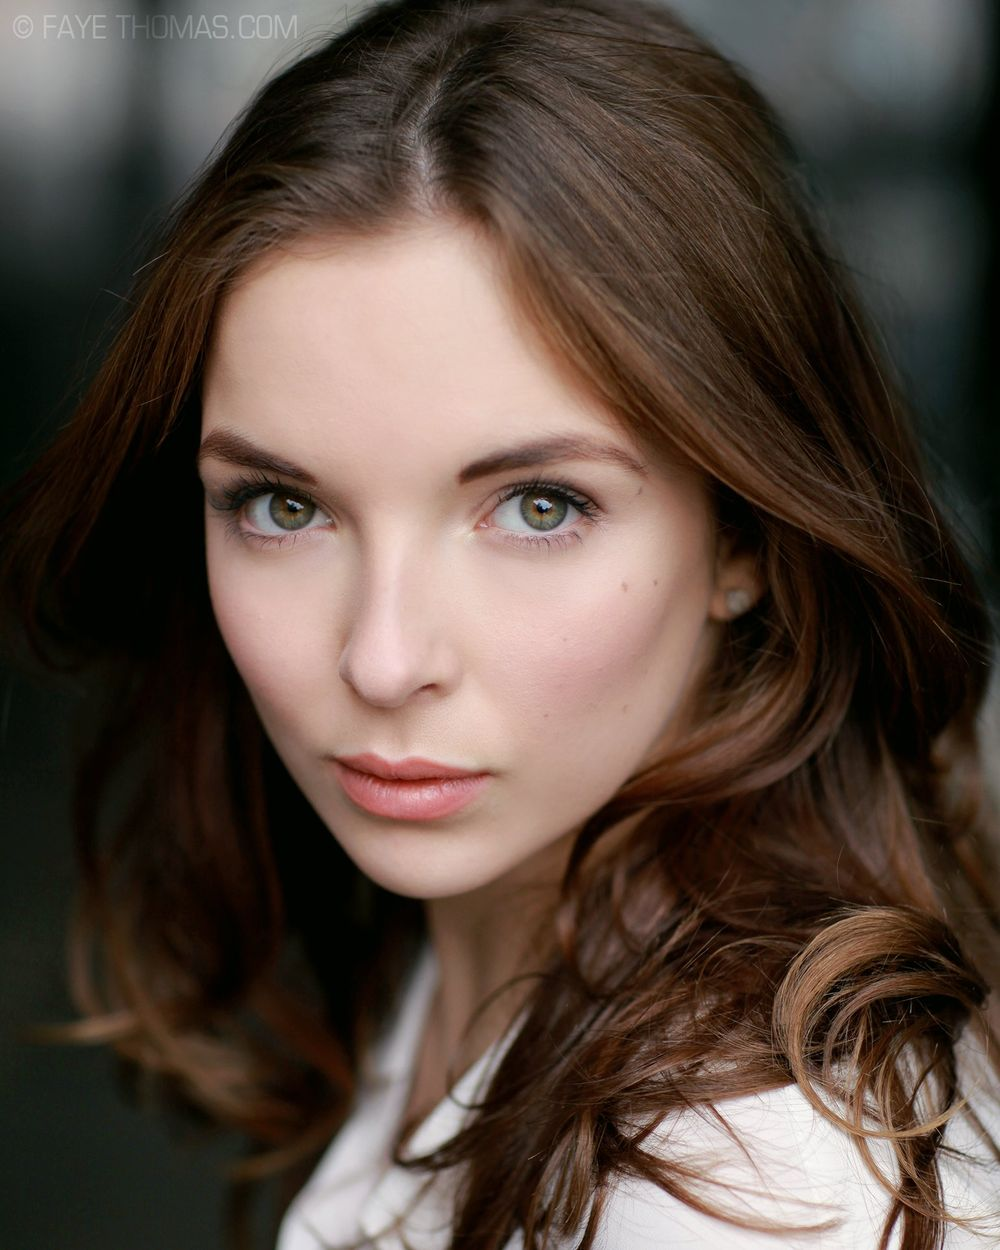 JODIE COMER by Faye Thomas Photography